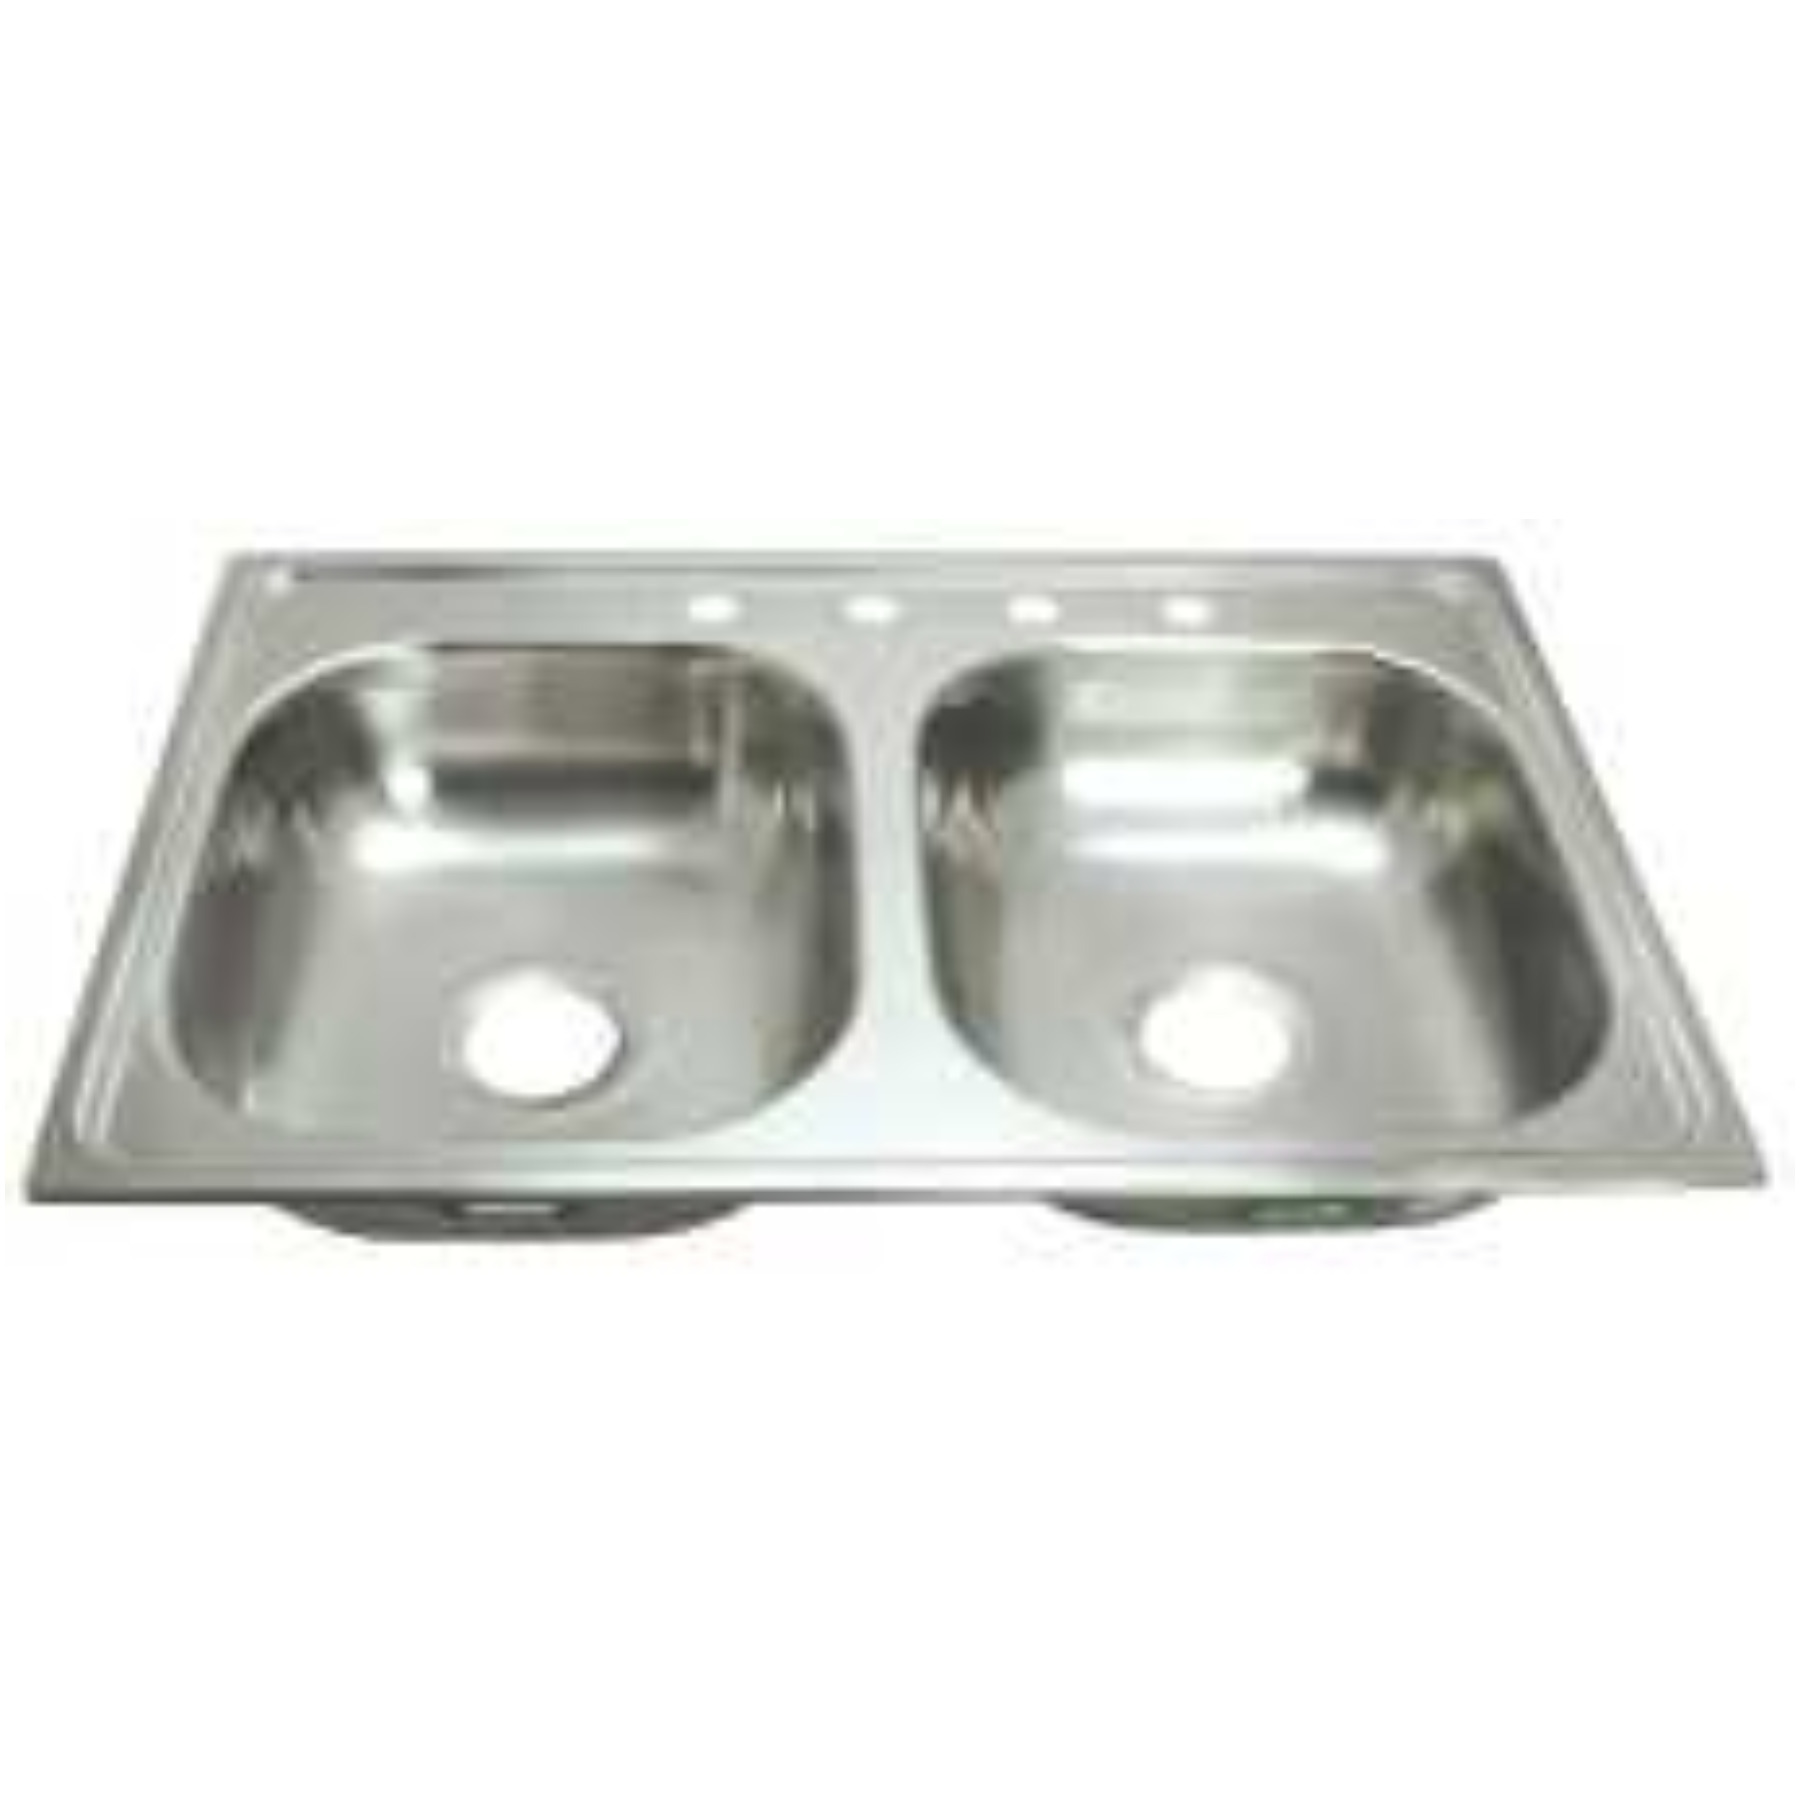 PROPLUS� 4-HOLE DOUBLE BOWL KITCHEN SINK FOR MOBILE HOMES, 24-GAUGE, STAINLESS STEEL, 33 X 19 X 6 IN.